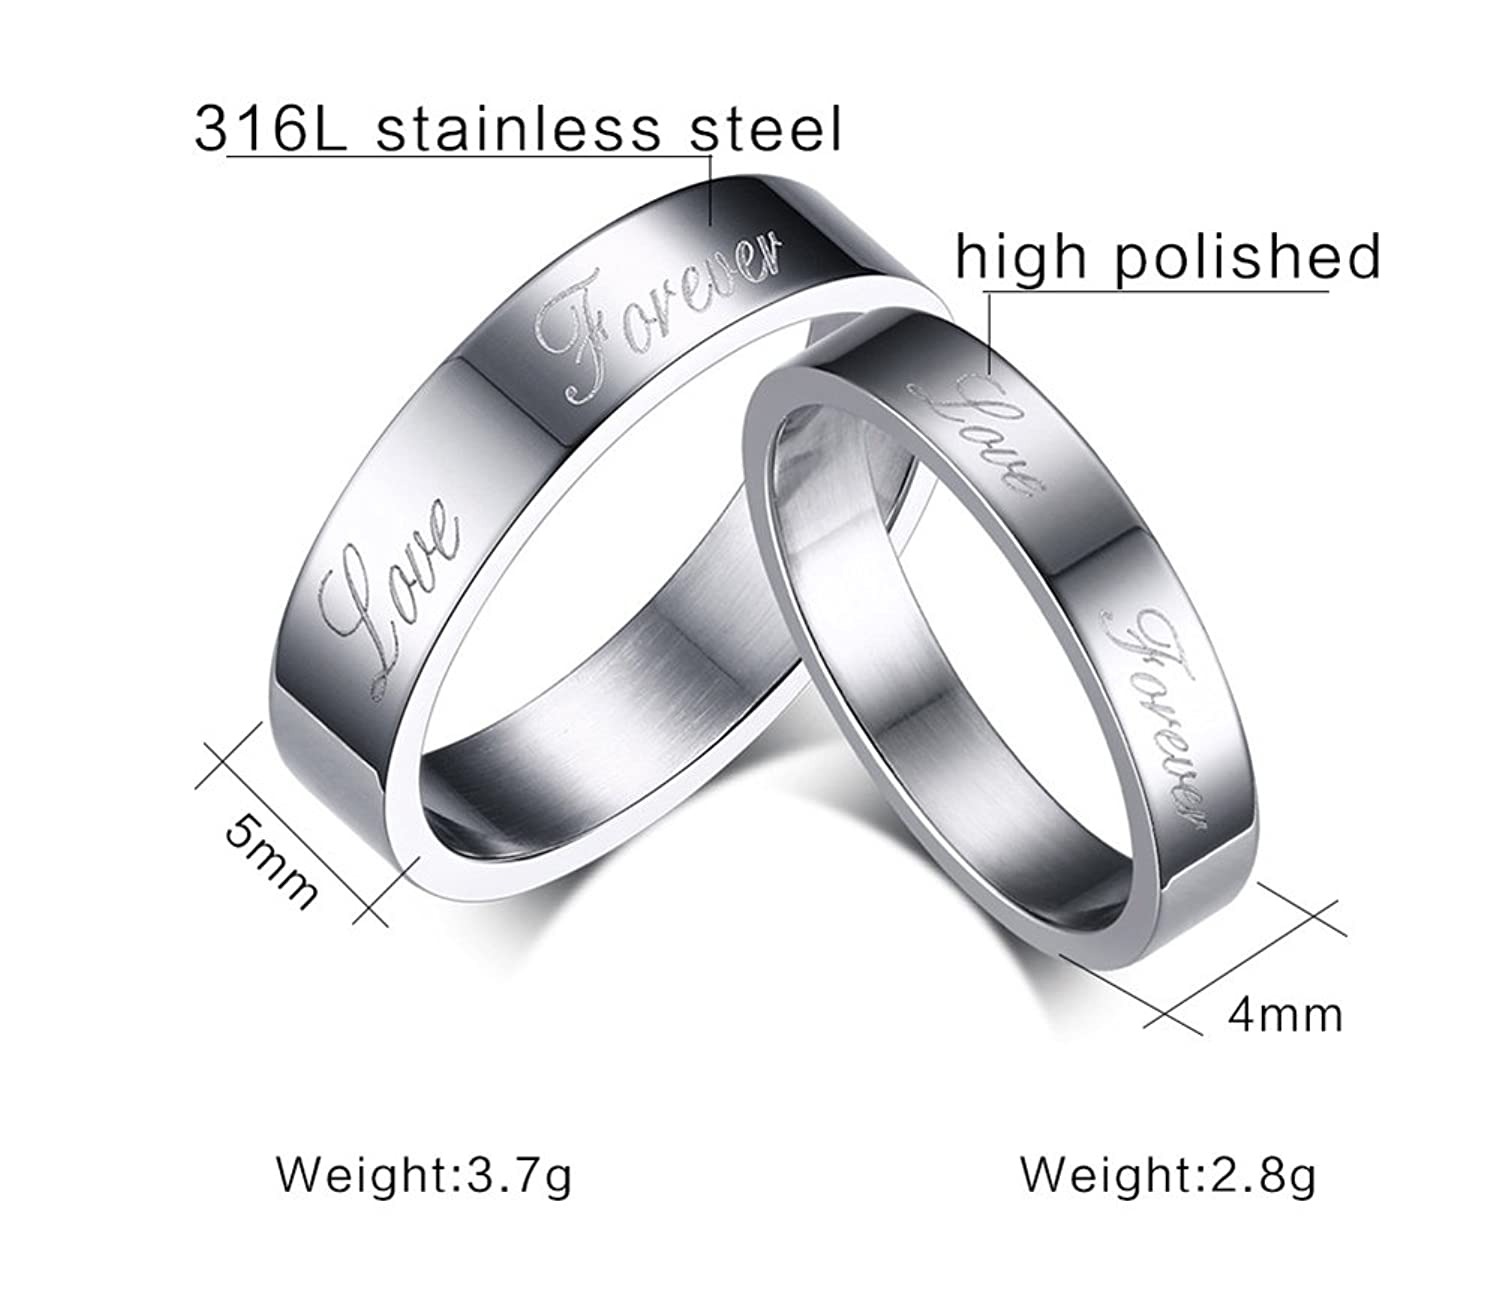 9ea65452ba Suohuan Jewelry His & Her Stainless Steel Forever Love Engraved Couple  Matching Rings Band Set for Engagement Promise Wedding Valentine's Day Gift  Silver